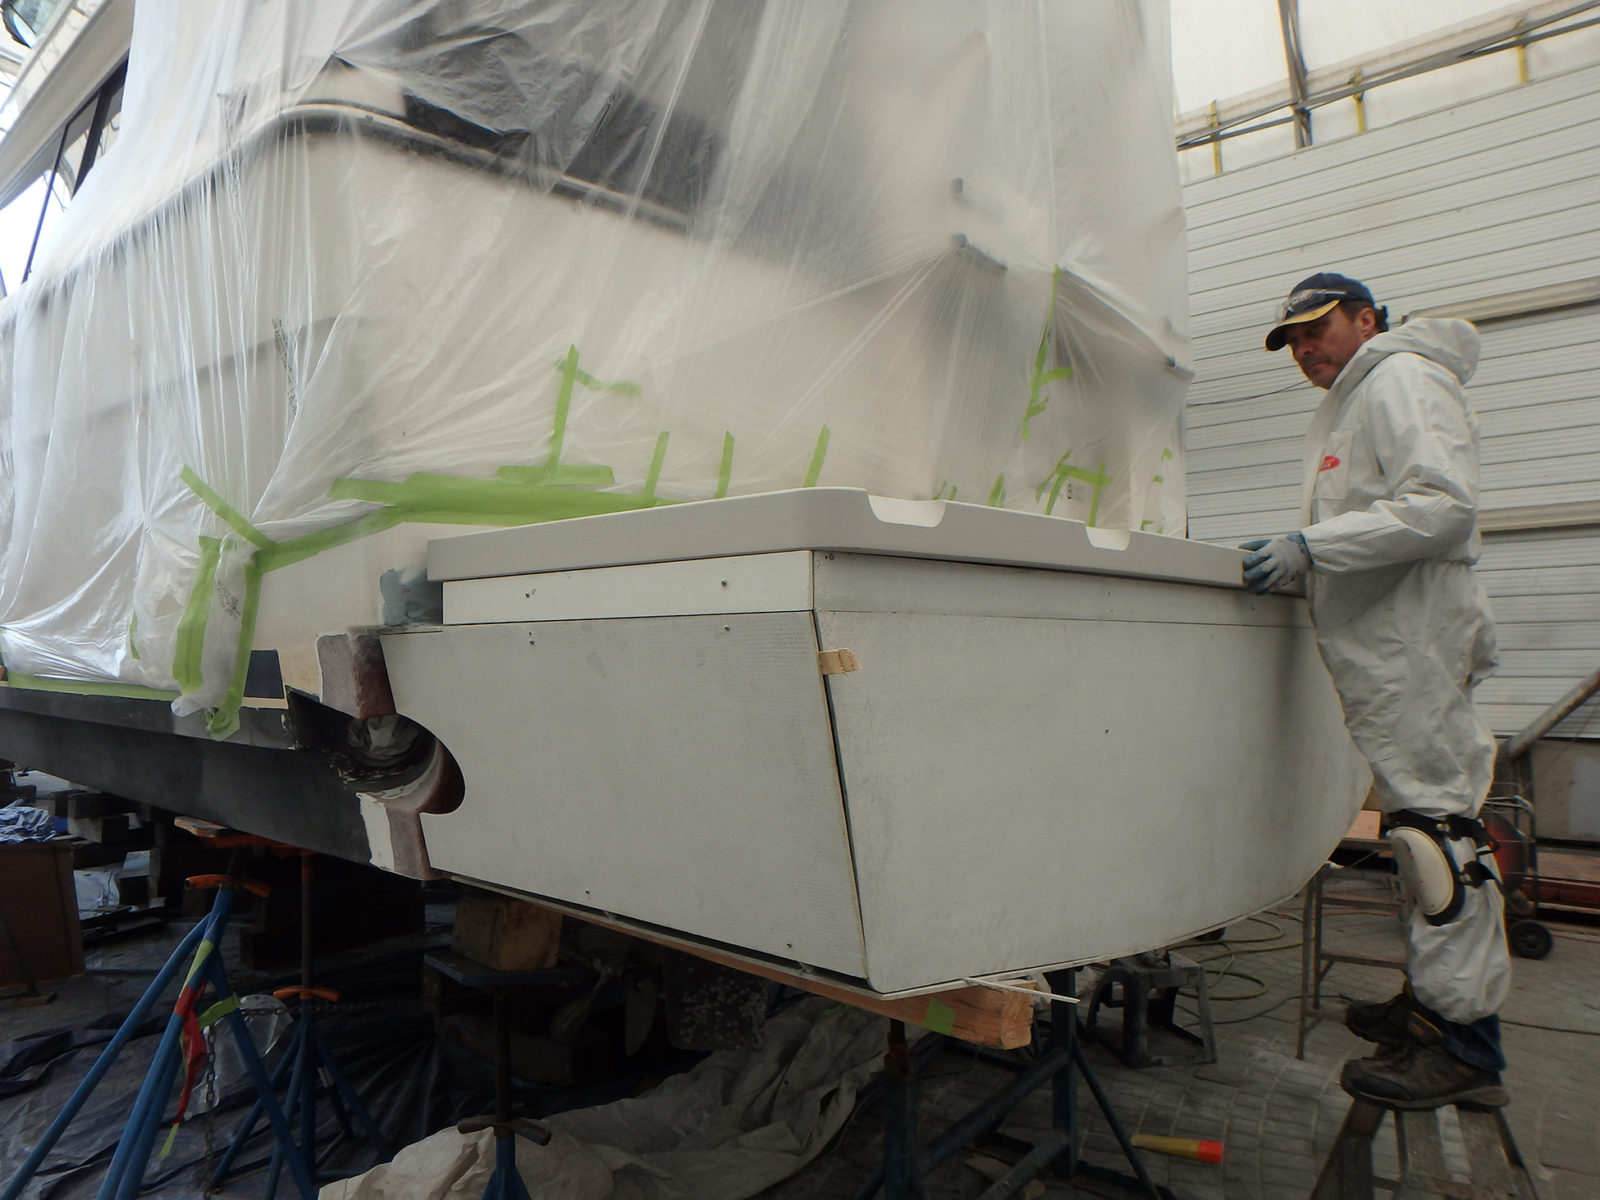 Deon, one of our fiberglassers, getting ready to finish the job